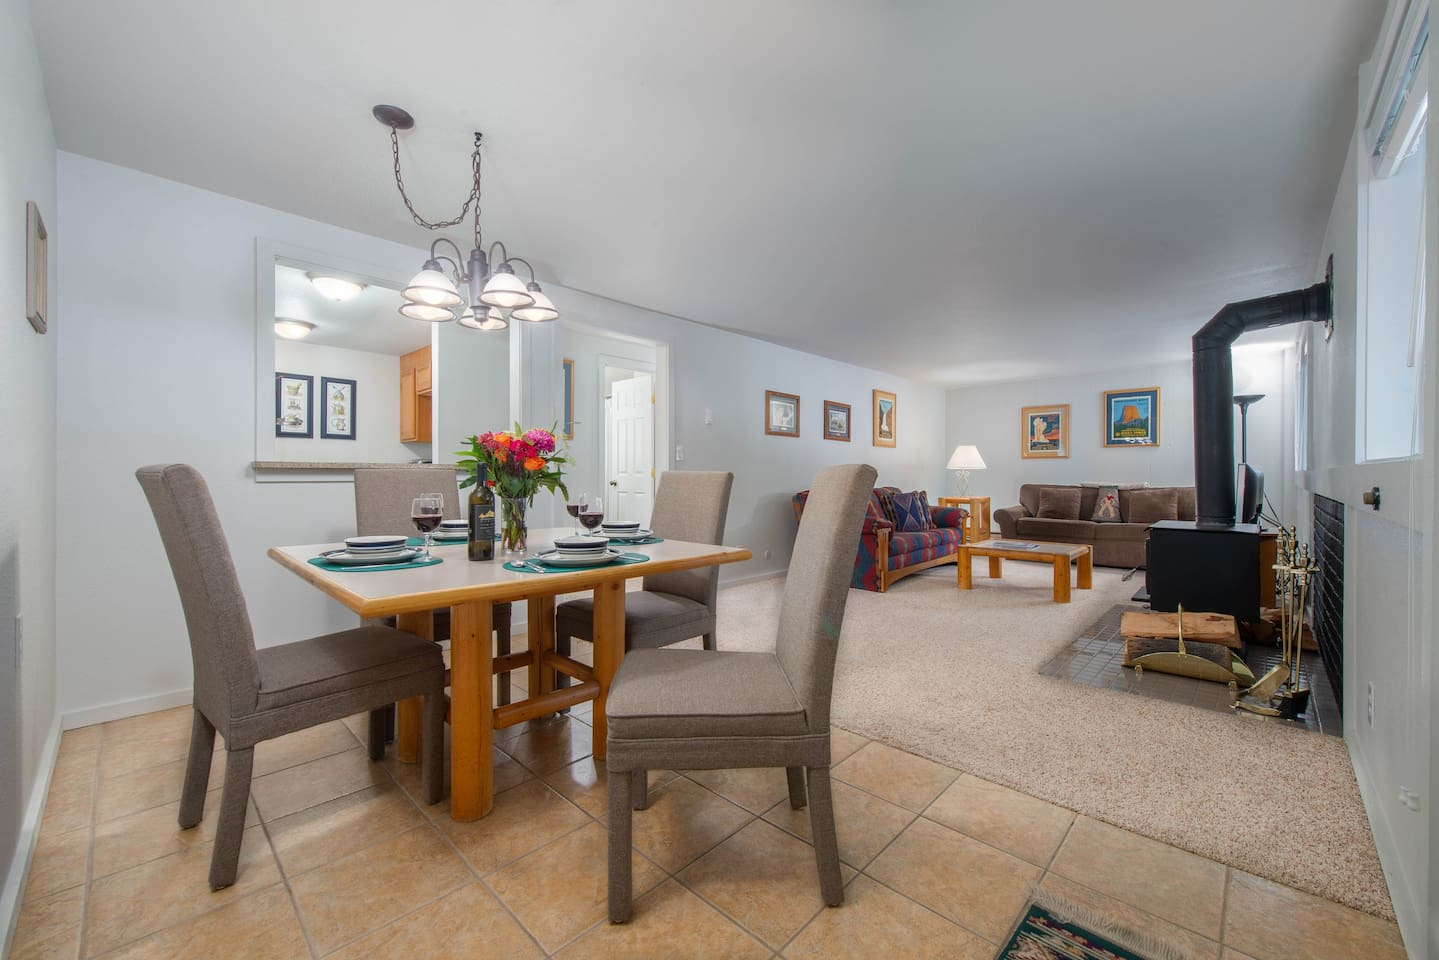 Dining for 4 w/ Living Space